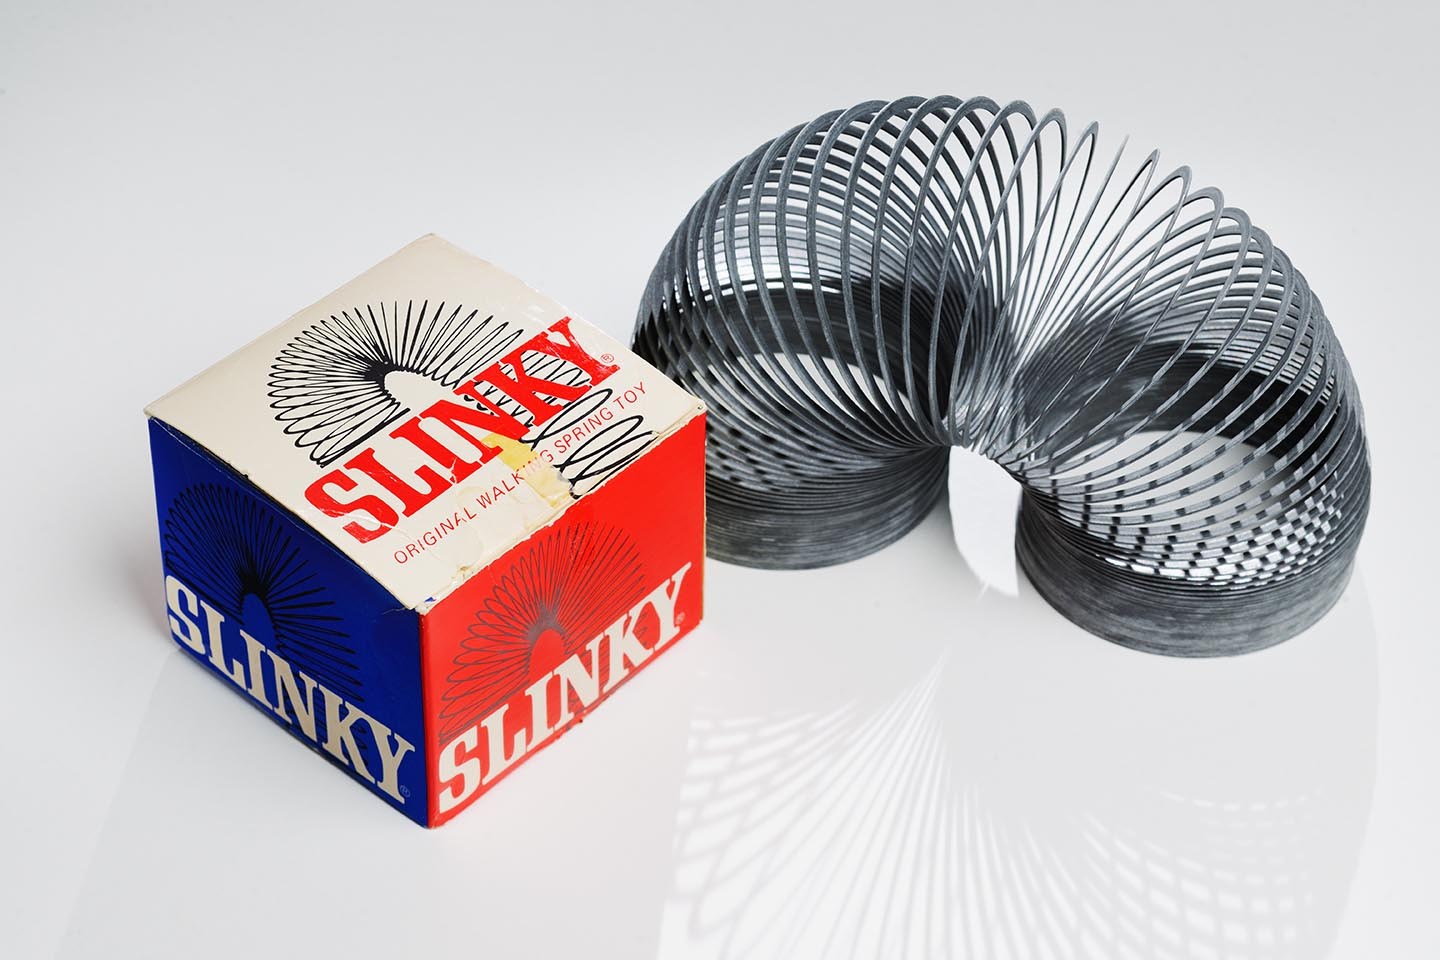 slinky 1950's toy Toy Boom exhibit Raleigh